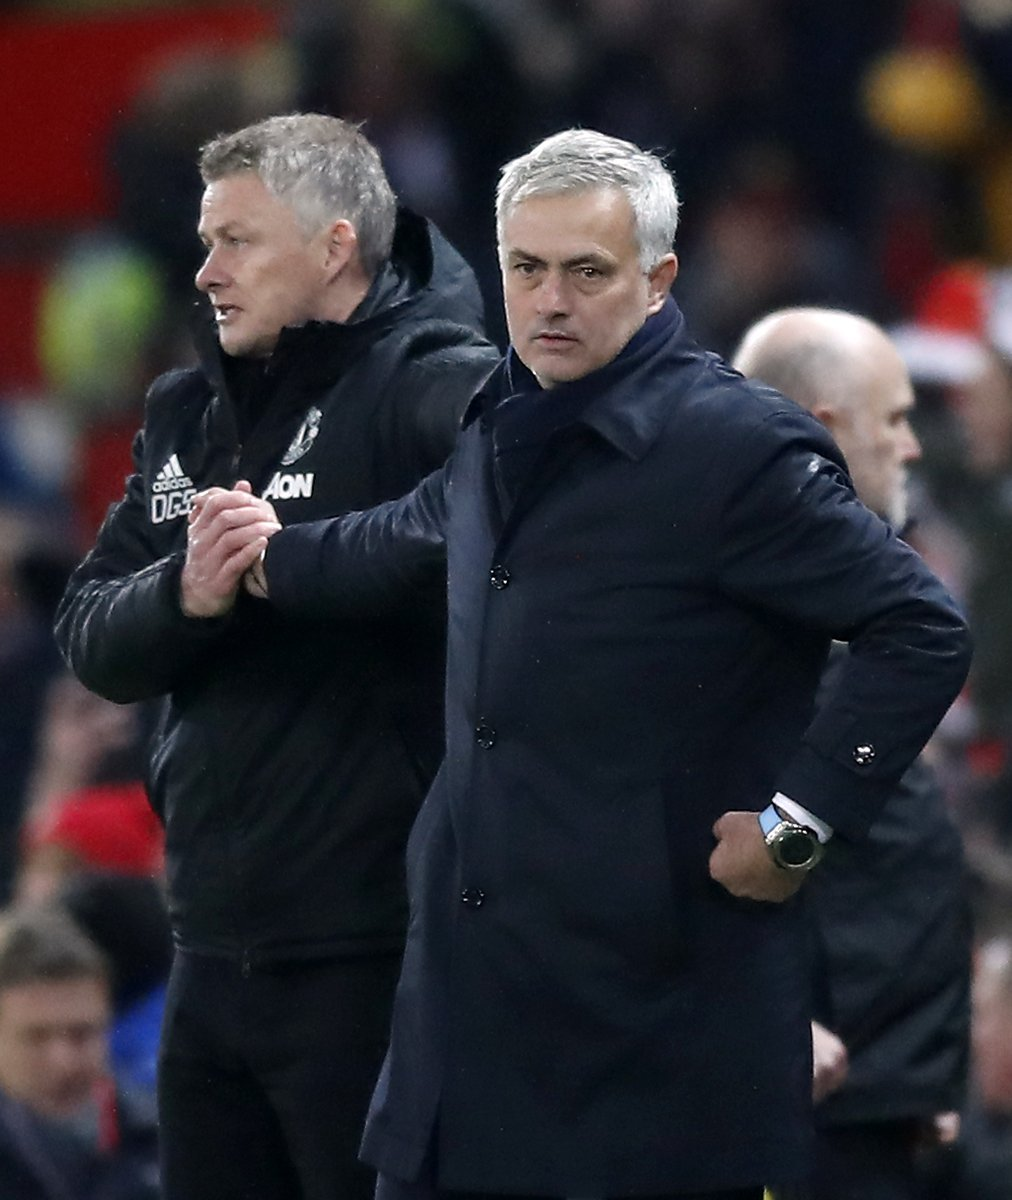 """Mourinho: """"I have Premier leagues, not a Premier league. I have Champions Leagues, not a Champions League.  The only person who can make an argument with me is Guardiola. He has everything that I have. Not a person with only 3pts in his name, but with no history of trophies."""" https://t.co/1yroQ2gzqy"""